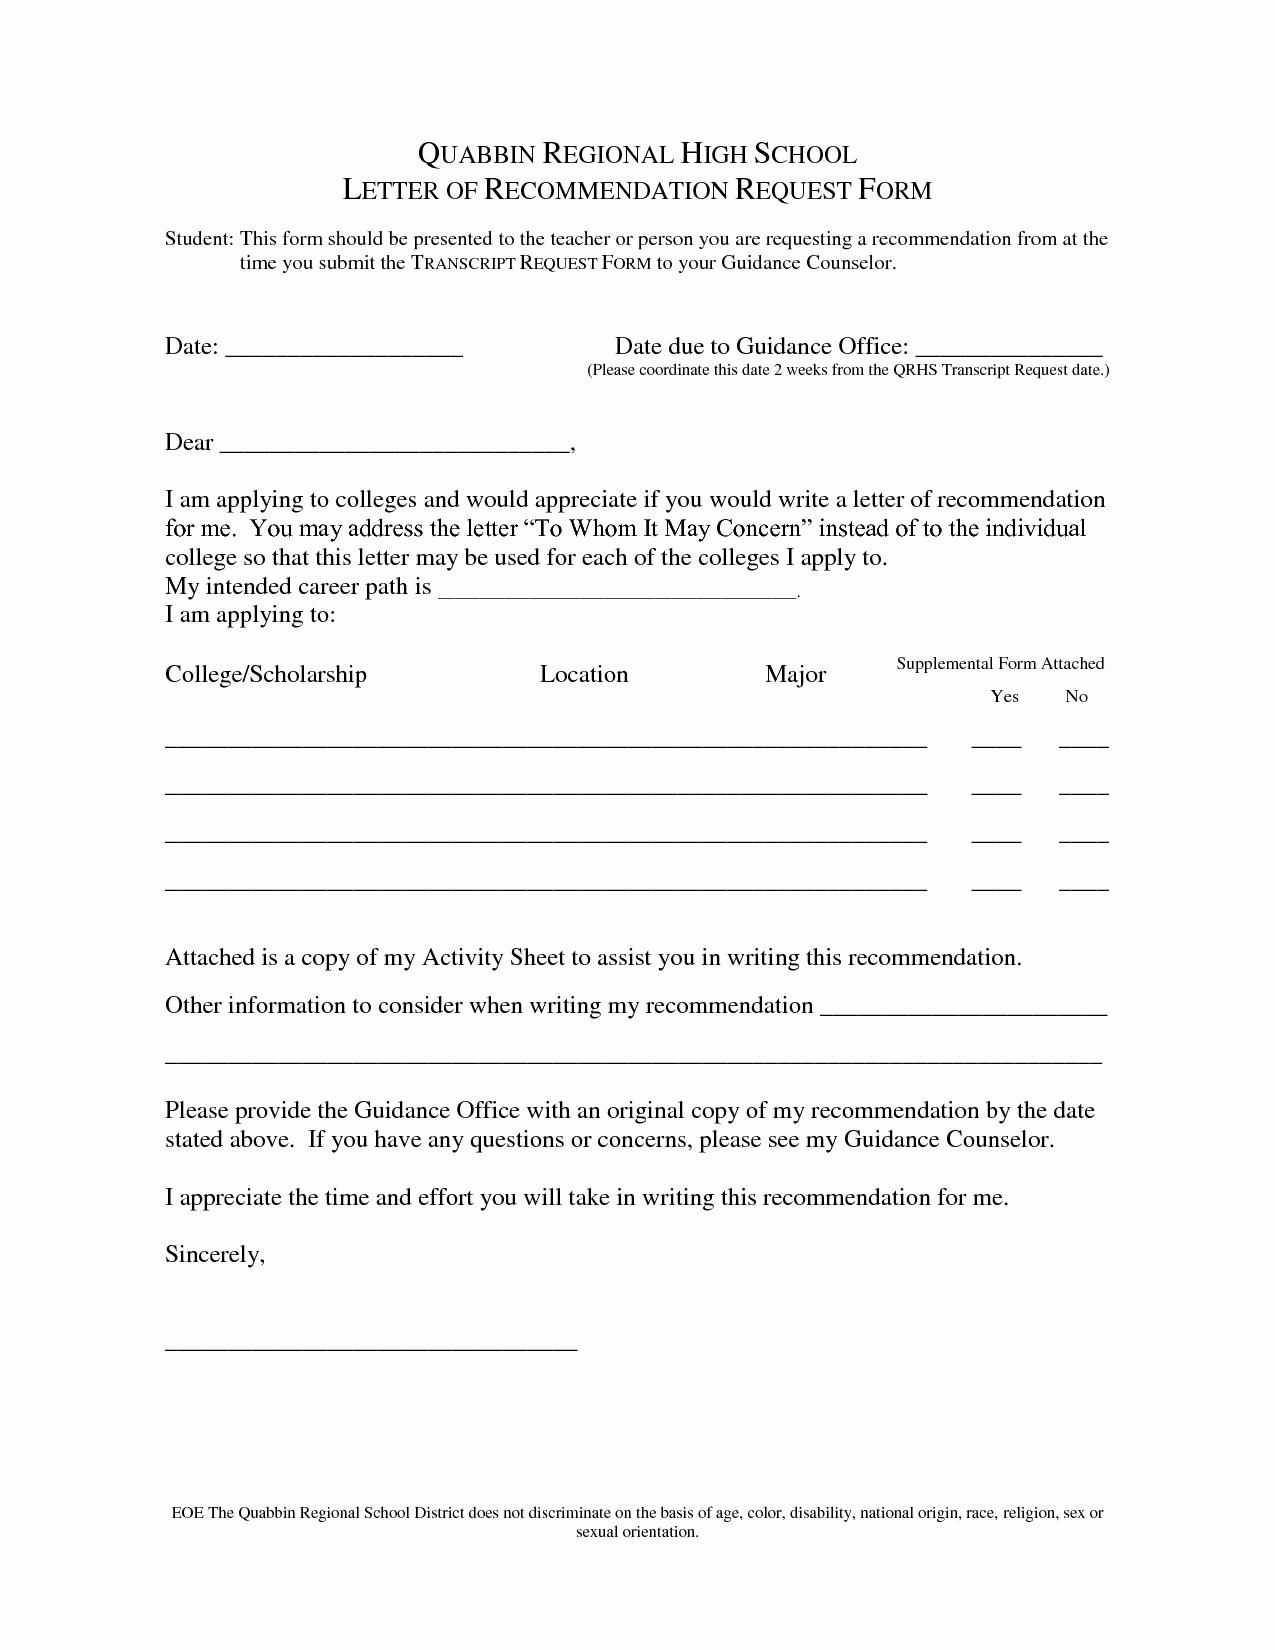 Form for Letters Of Recommendation Beautiful Sample Letter Re Mendation Request form Oshiborifo